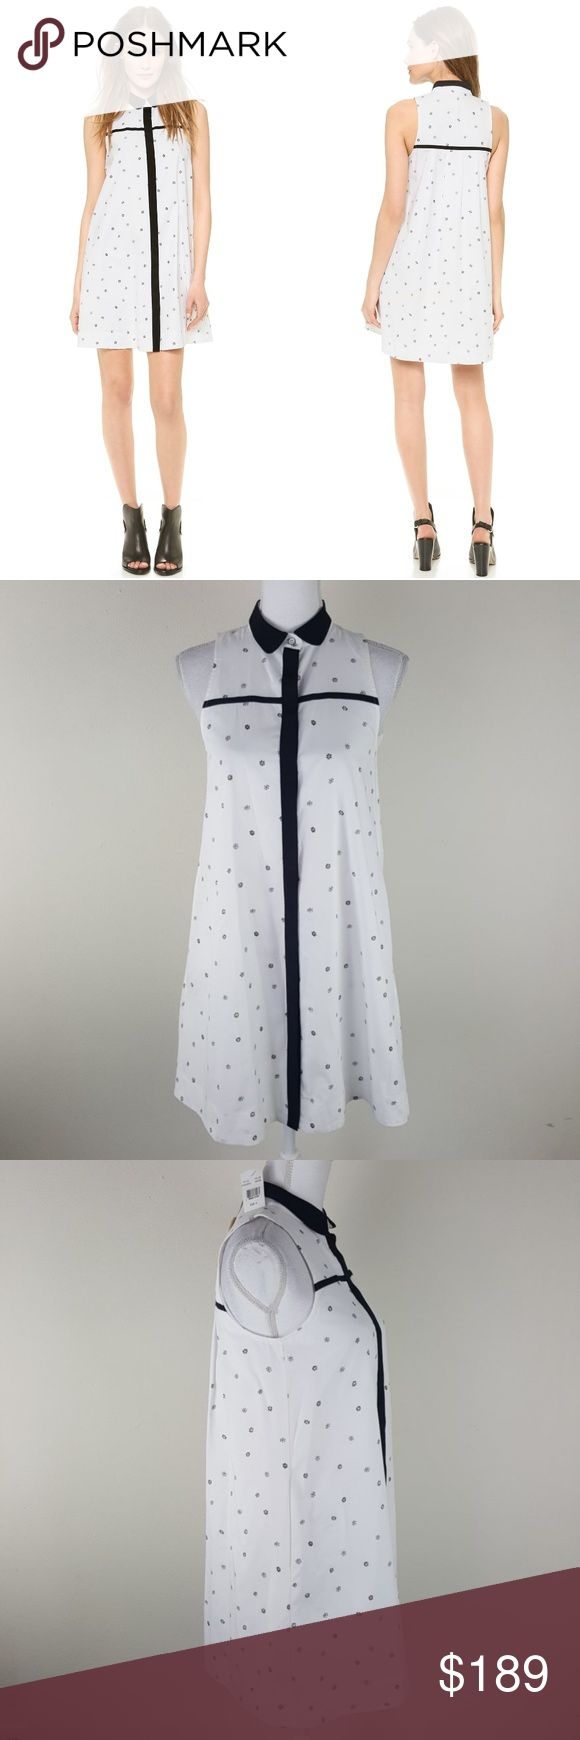 "NEW $395 Rag & Bone White London Dress Size Small Size Small NEW WITH TAGS! Excellent Condition! No rips, stains, etc.  Measurements taken un-stretched & laying flat: Armpit to Armpit: 18"" Length: approximately 34""  DETAILS Tiny flowers create a delicate, dotted effect on this Rag & Bone dress. The fold-over collar and hidden-button placket are cut from stretch silk for bold, lustrous contrast. Pleating in back. On-seam pockets. Lined.  Fabric: Soft, crisp weave. Shell: 100% cotton. Trim…"